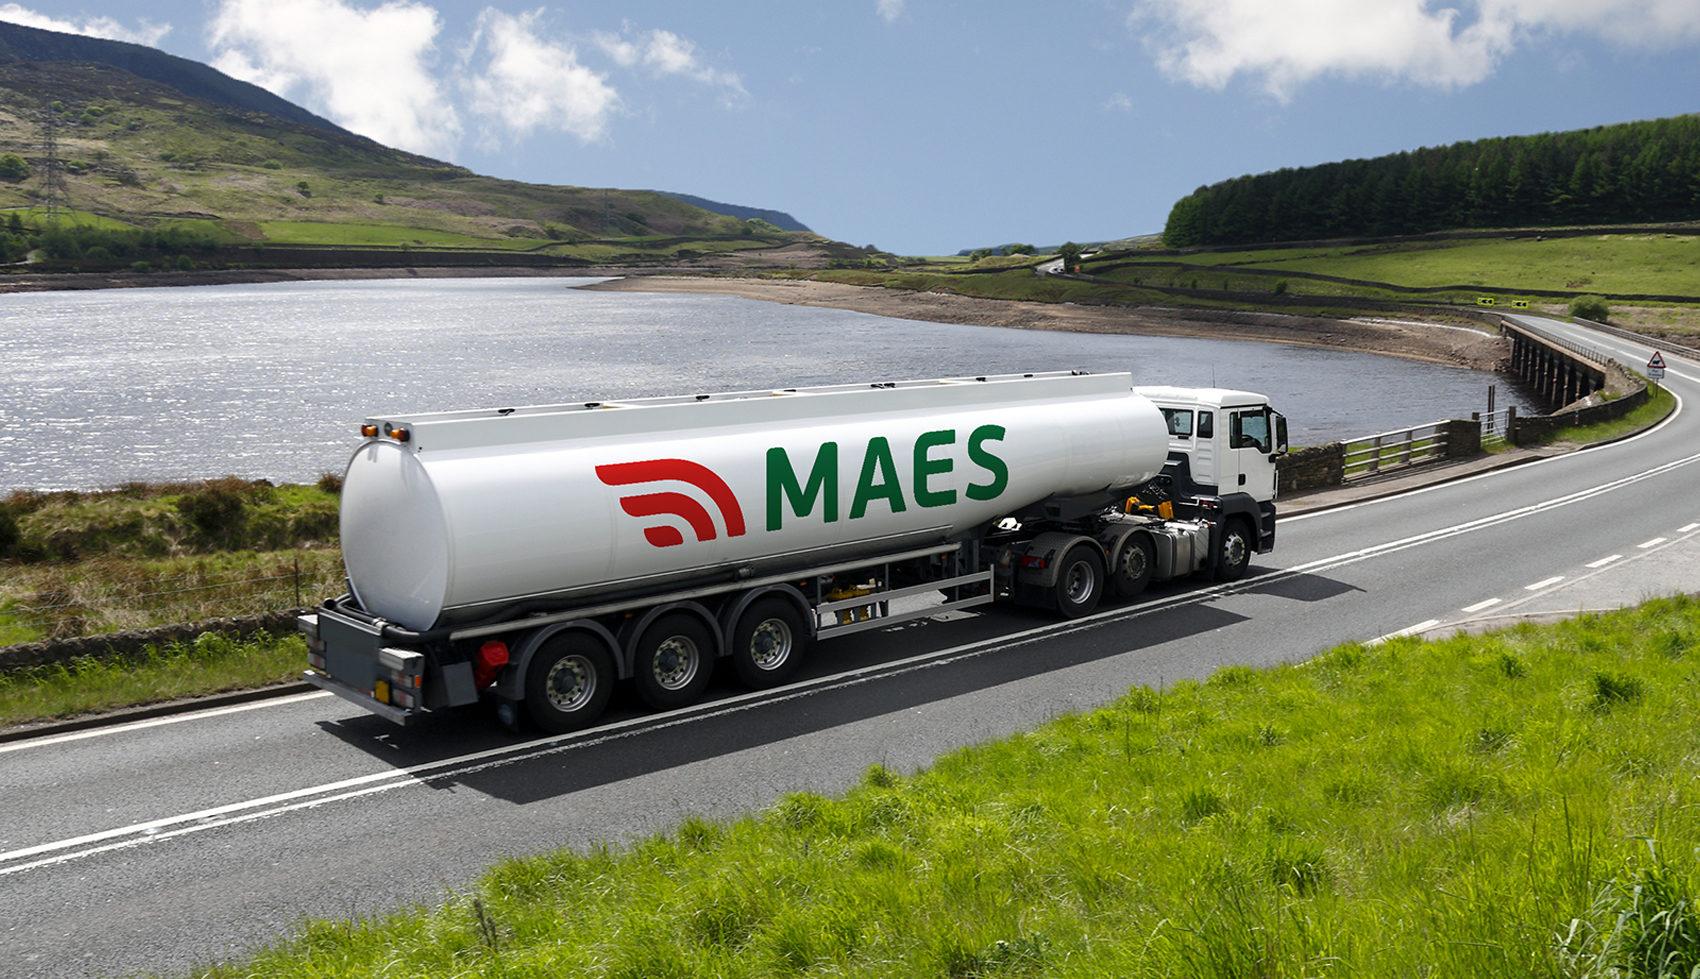 MAES - How we put MAES' energy & mobility solutions on the map!